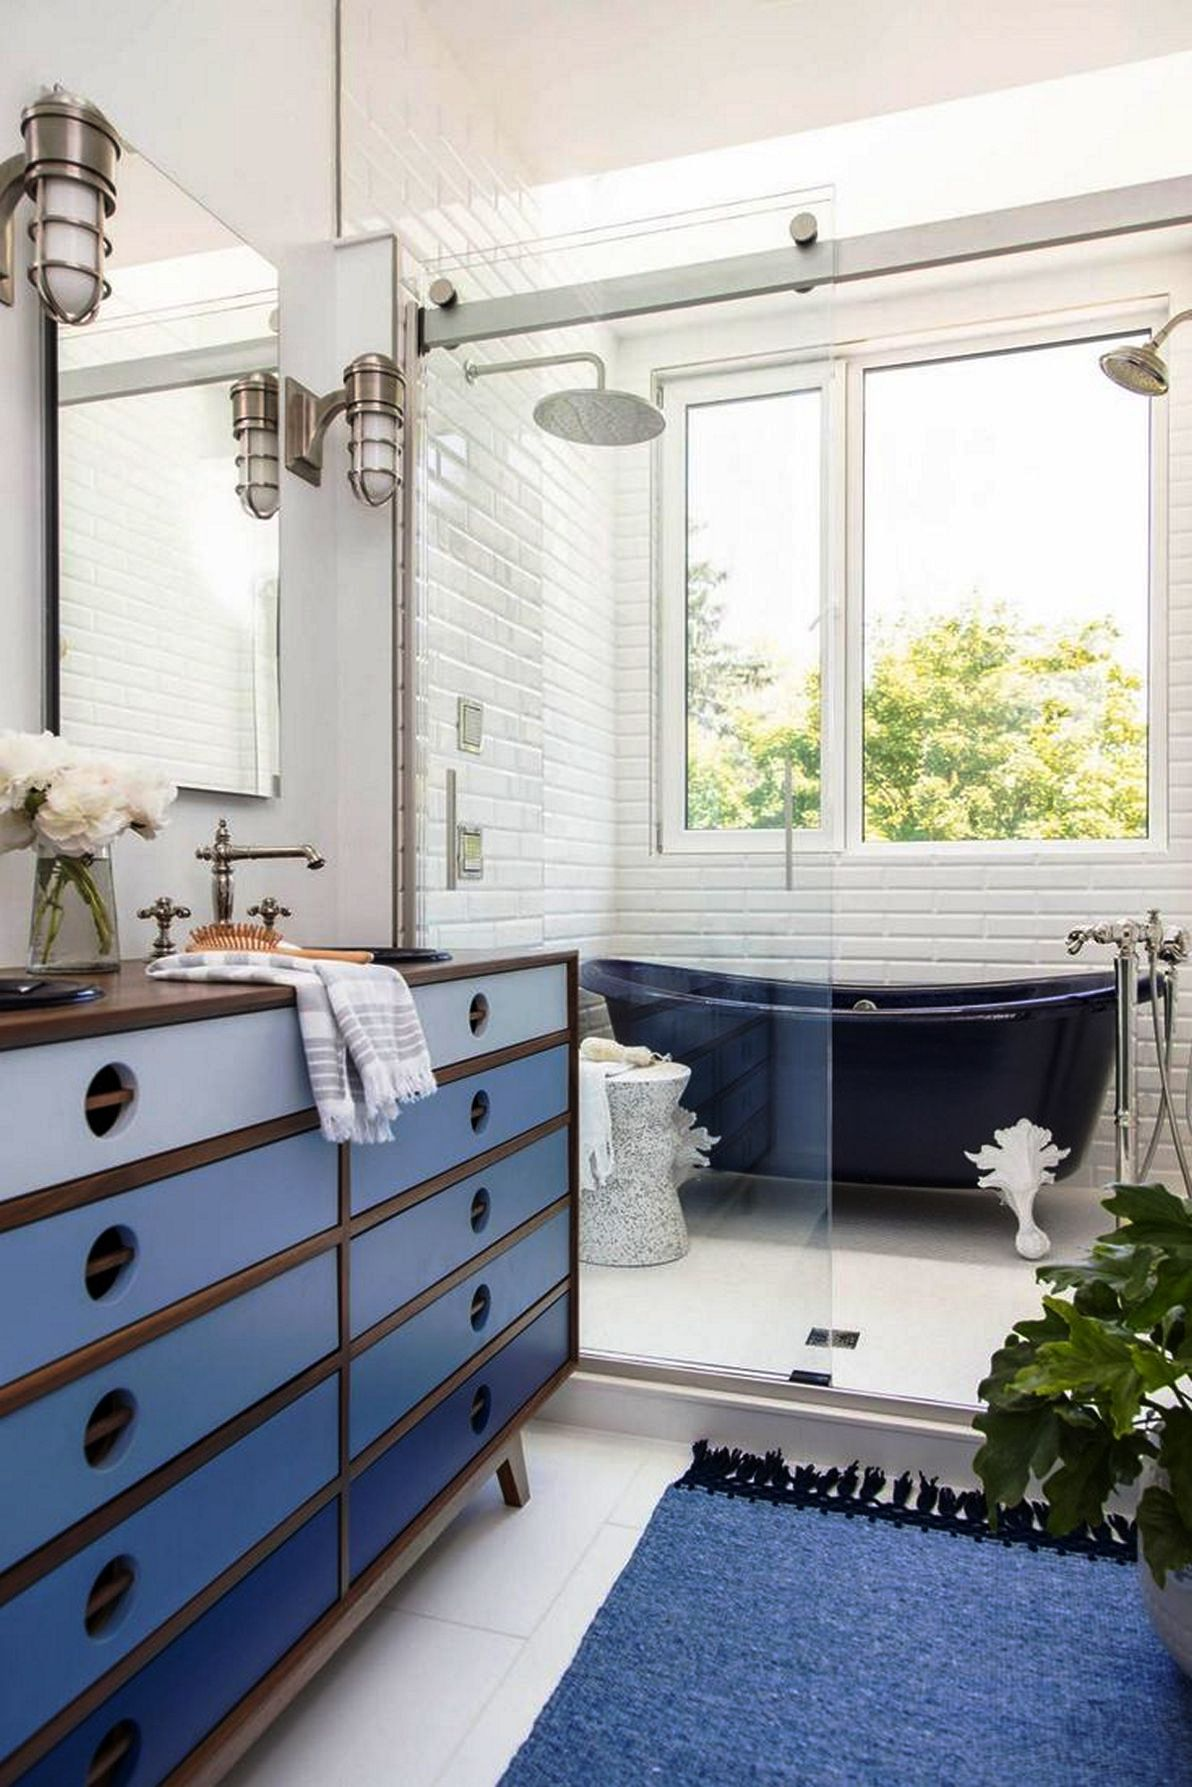 Bathroom trends 2021 the perfect new look for your bathroom remodeling 11